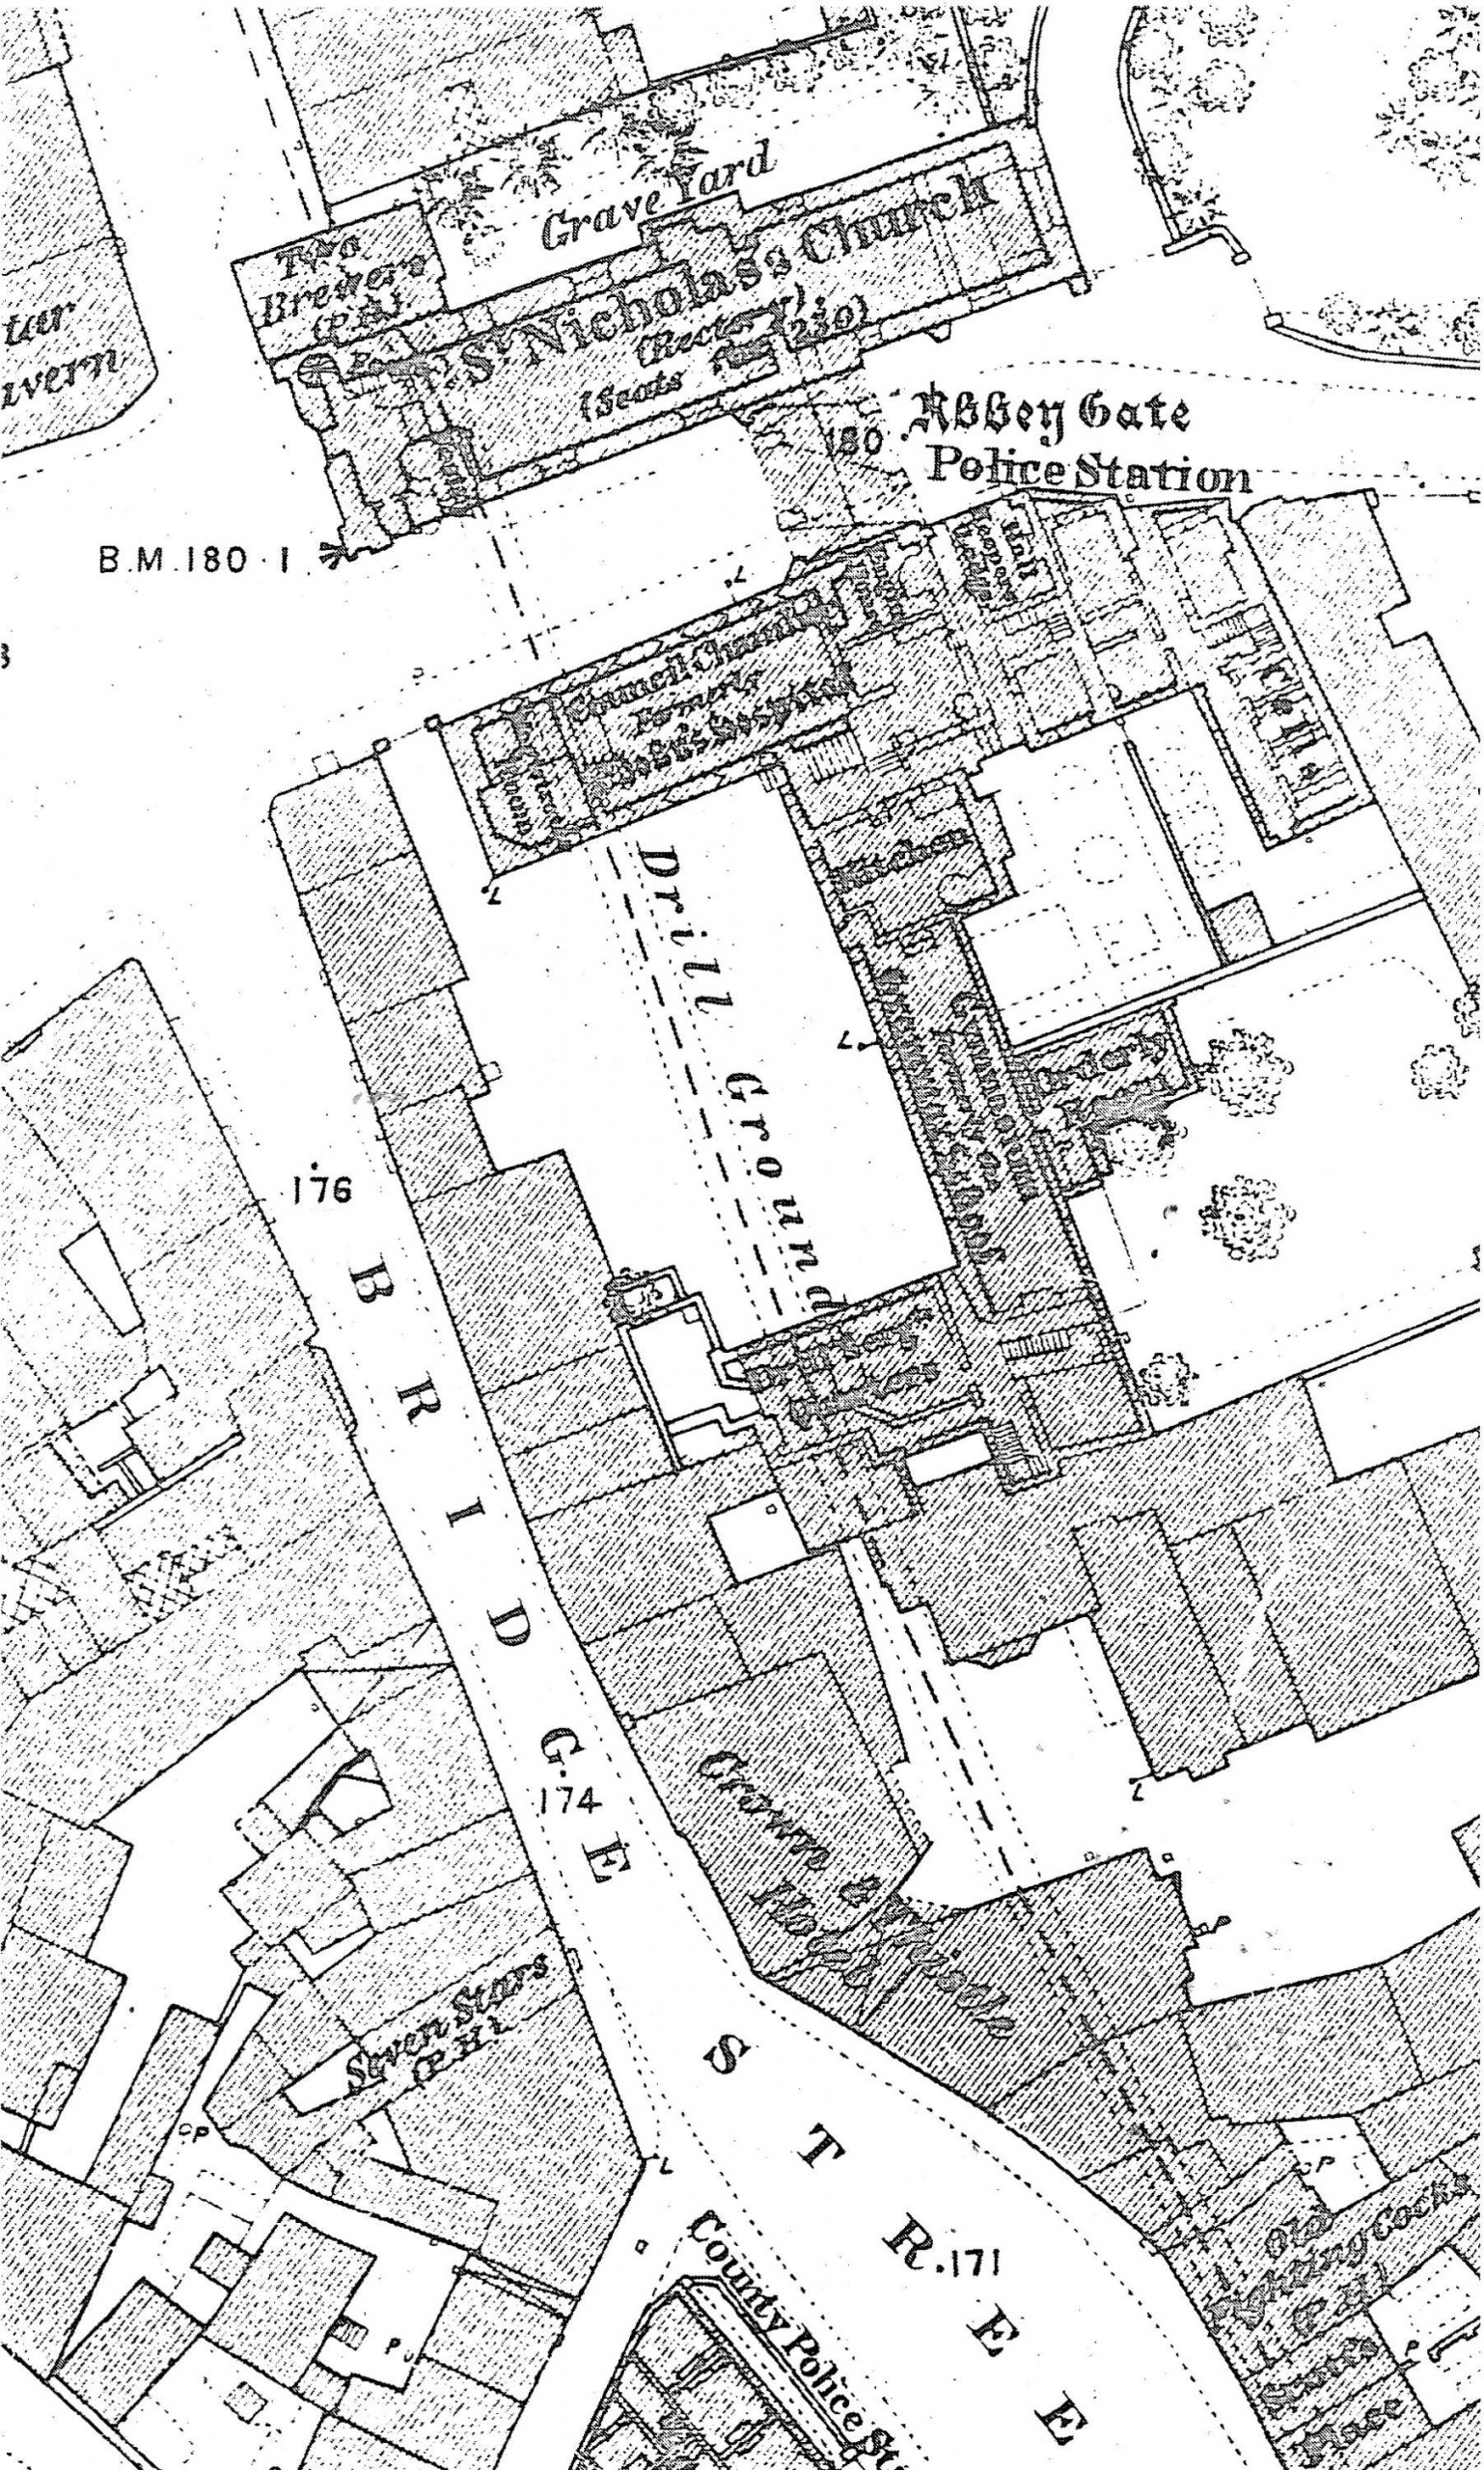 Figure 2 (right) Extract from 1:500 First Edition Ordnance Survey map (1874). The dashed line shows the course of the Stert culvert. (With thanks to Oxfordshire Library Services)